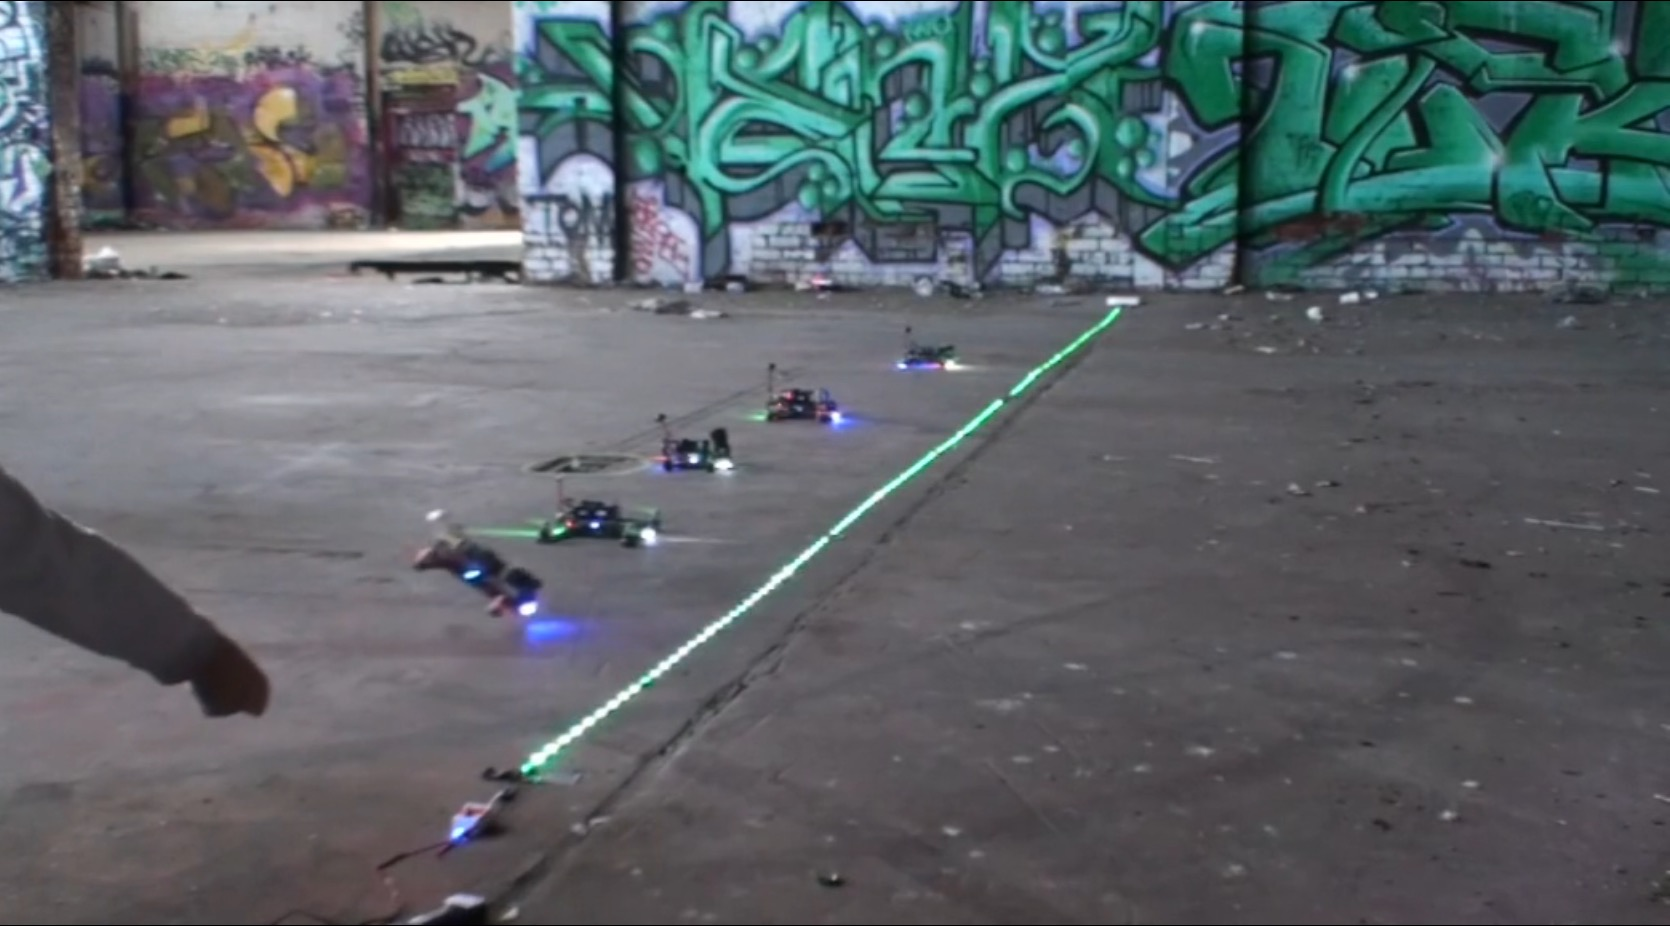 Theres An Underground First Person View Drone Race In Australia